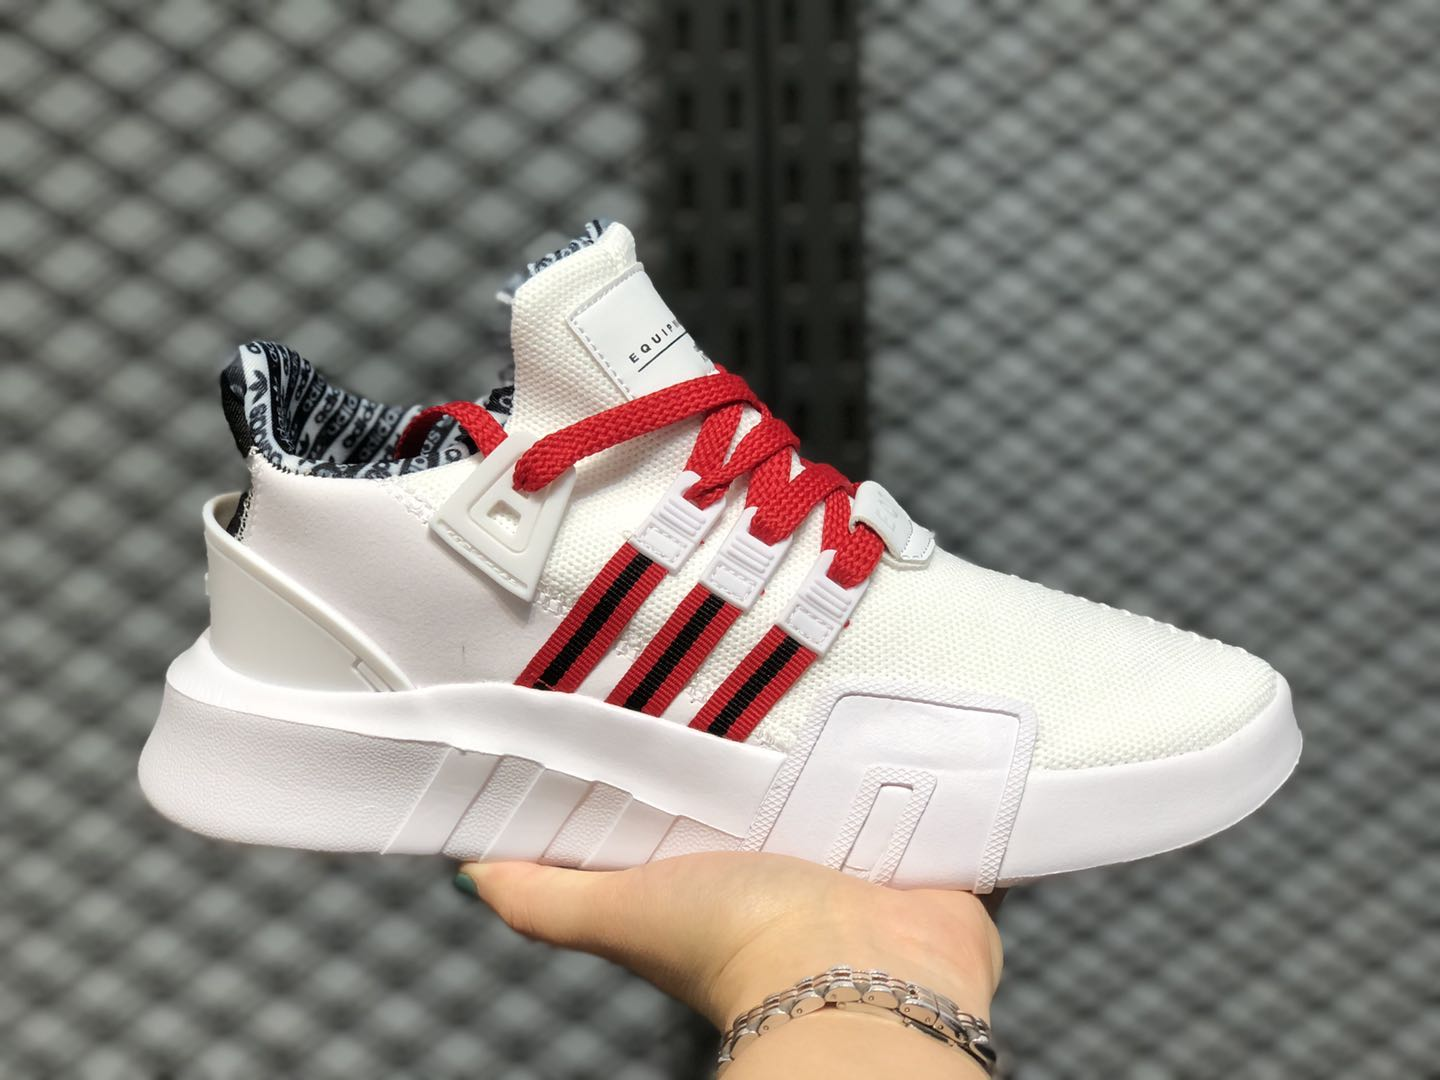 Adidas EQT Bask ADV Cloud White/University Red-Black EE0918 Cheap Price